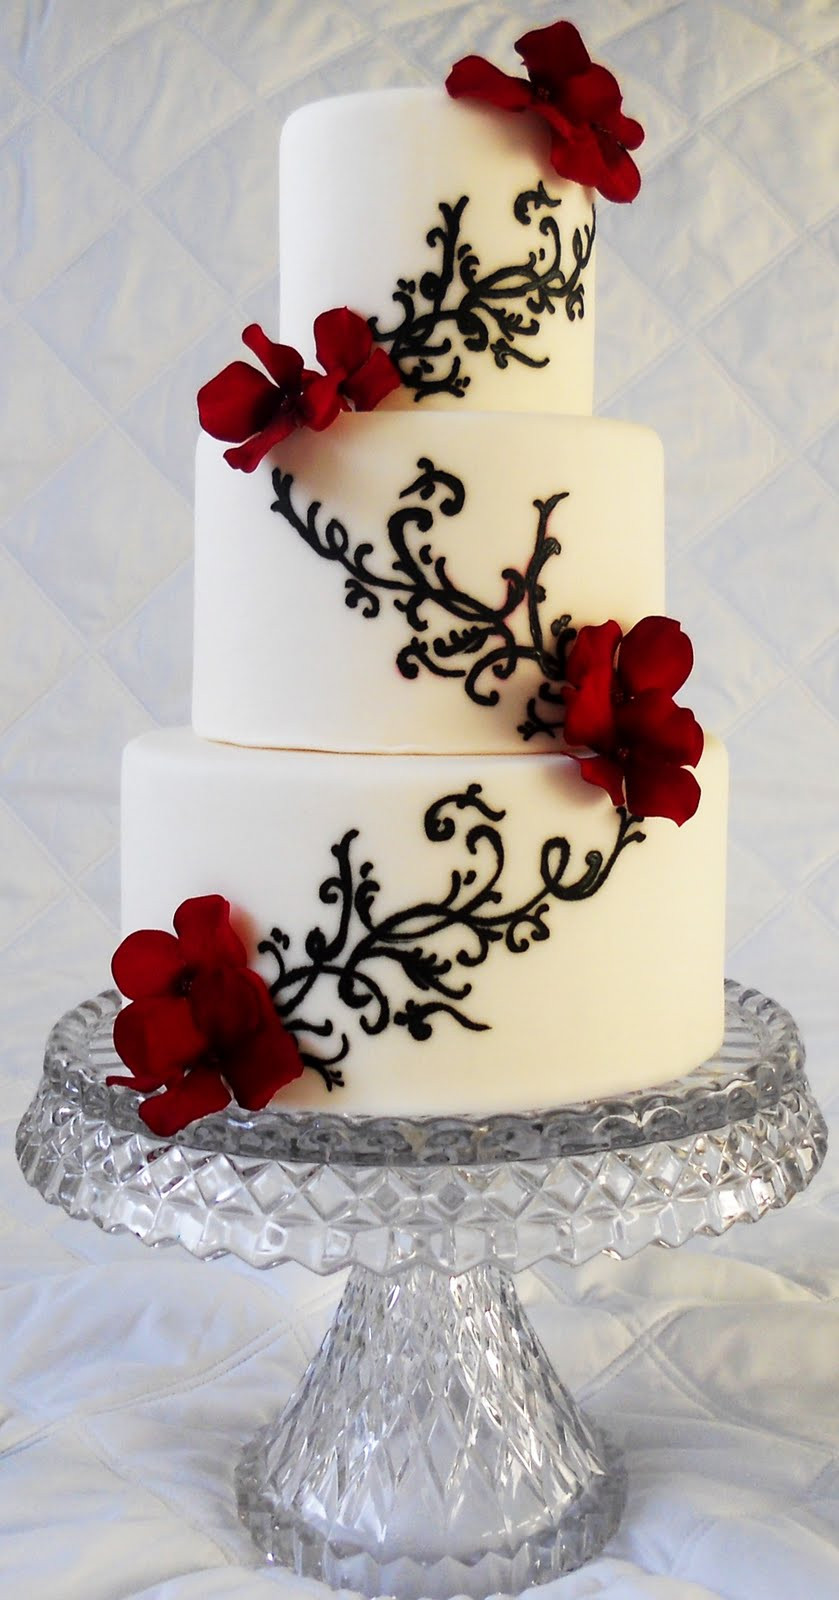 Red Black White Wedding Cake  Memorable Wedding Find the Best Red Black and White